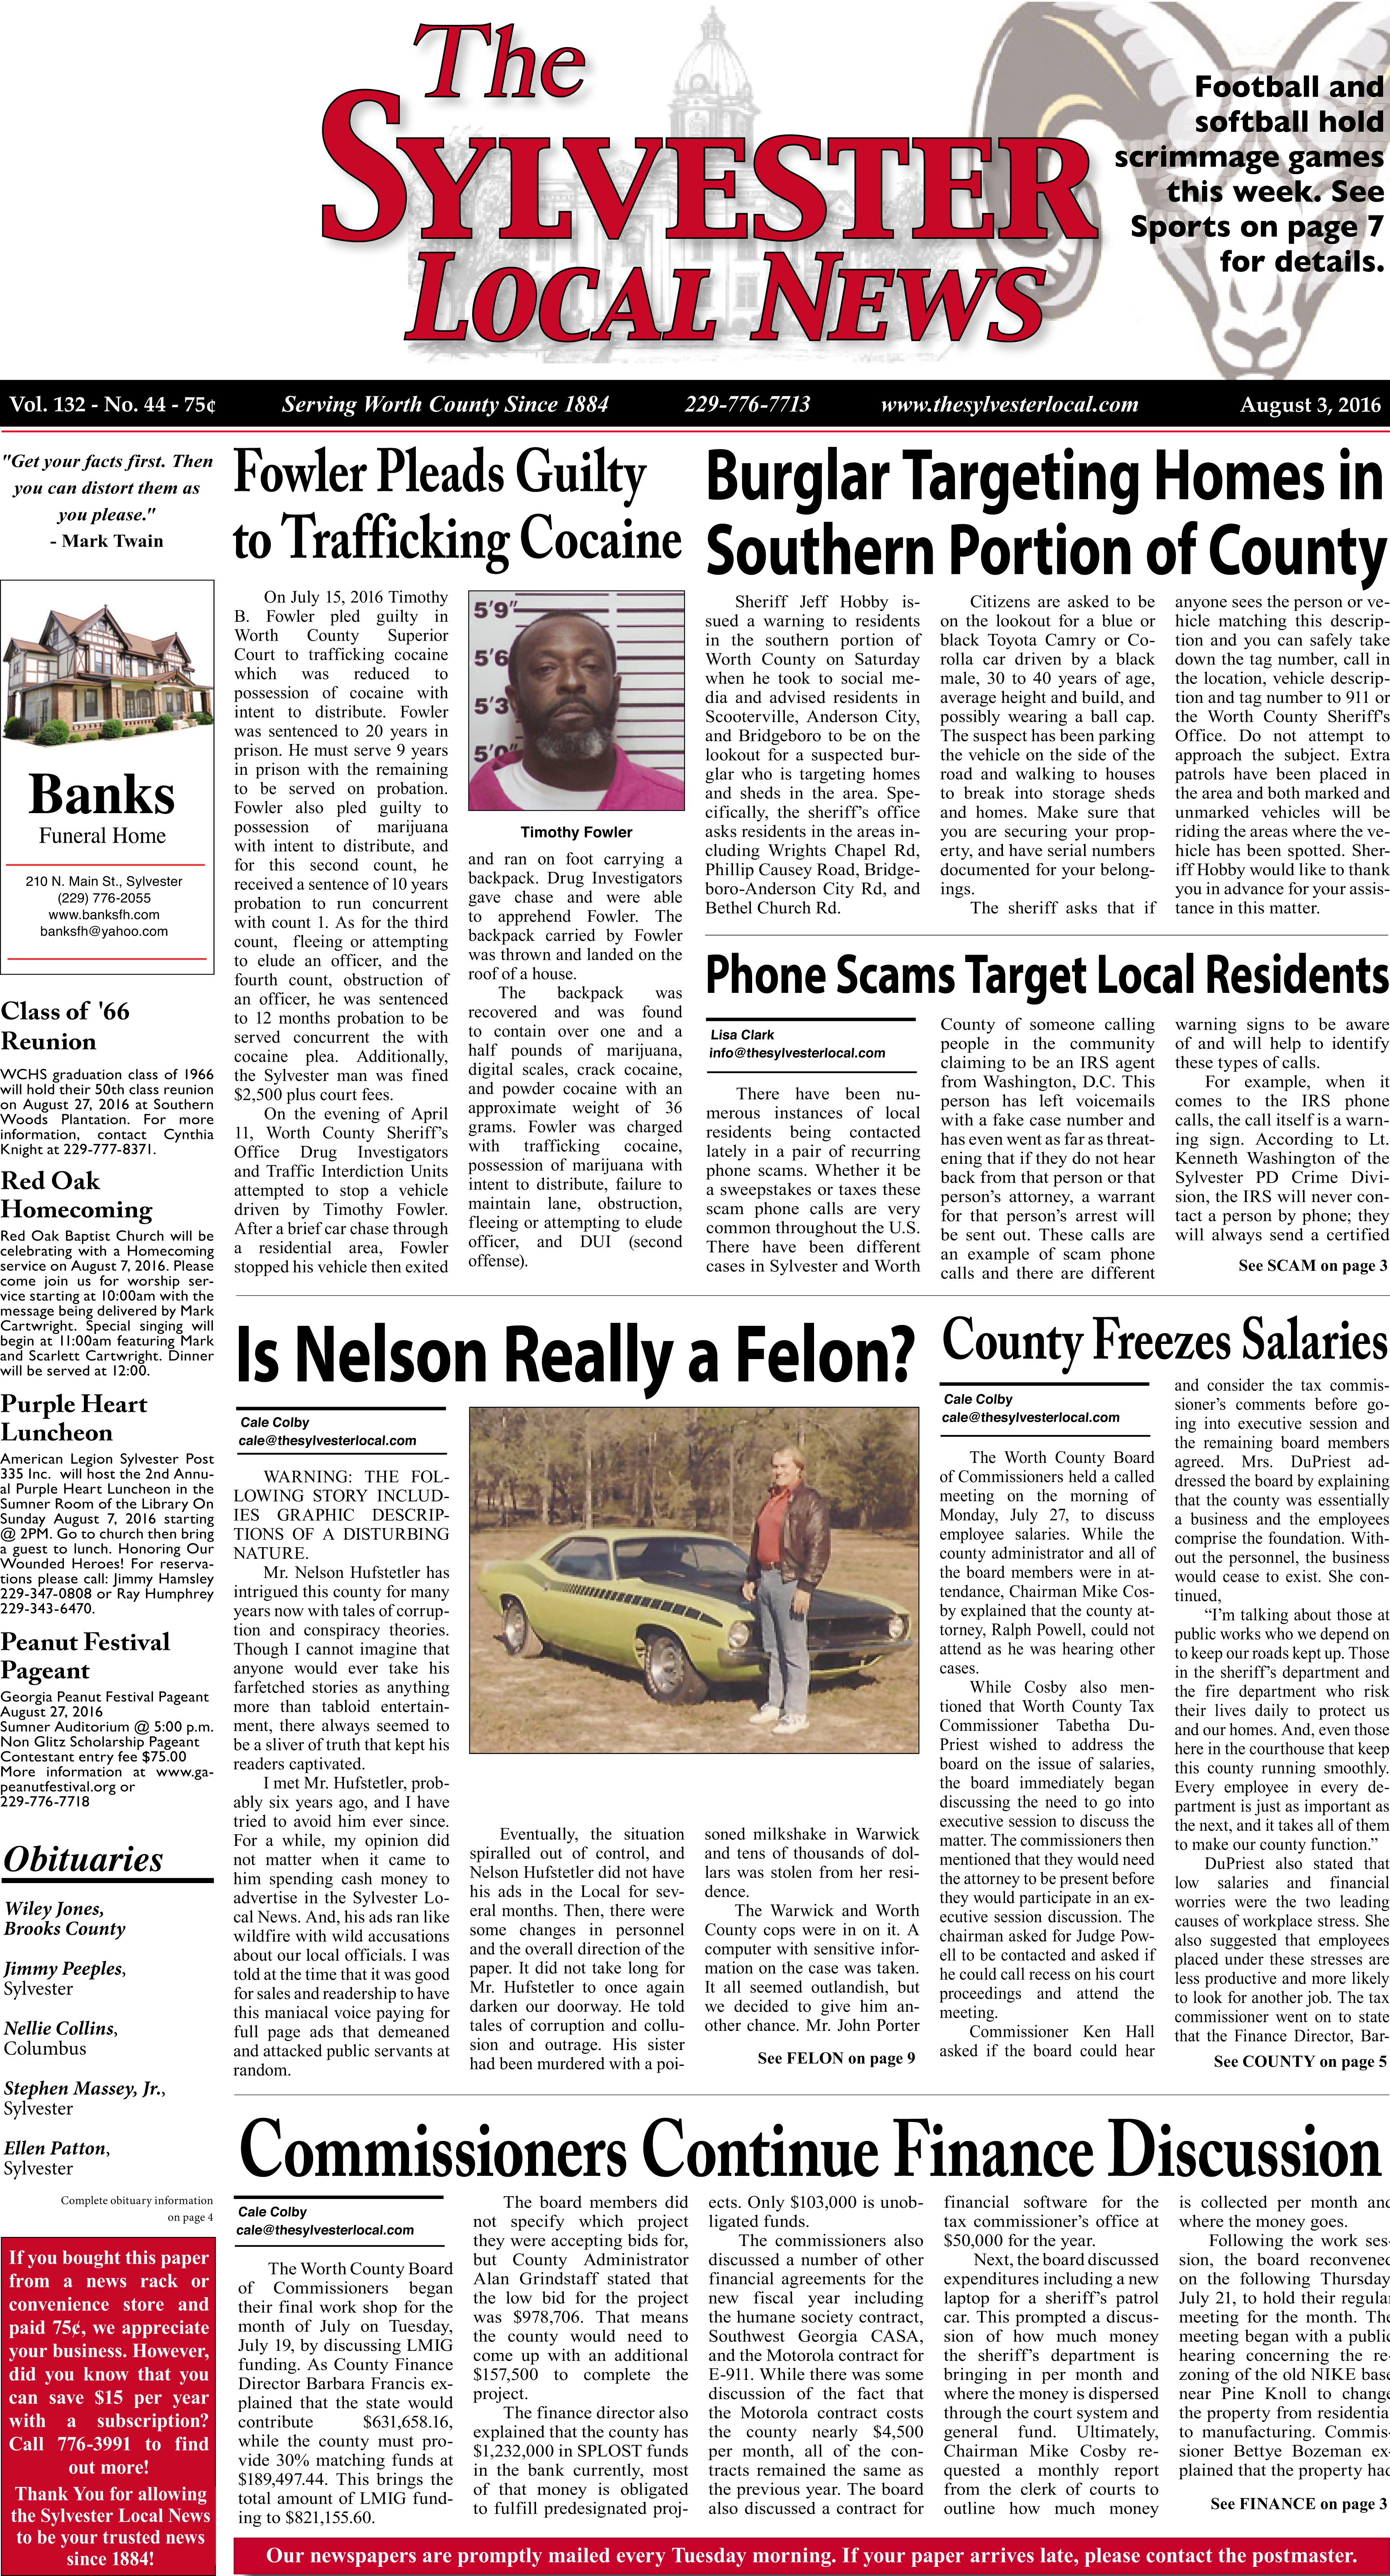 YOUR FRONT PAGE (August 3, 2016)